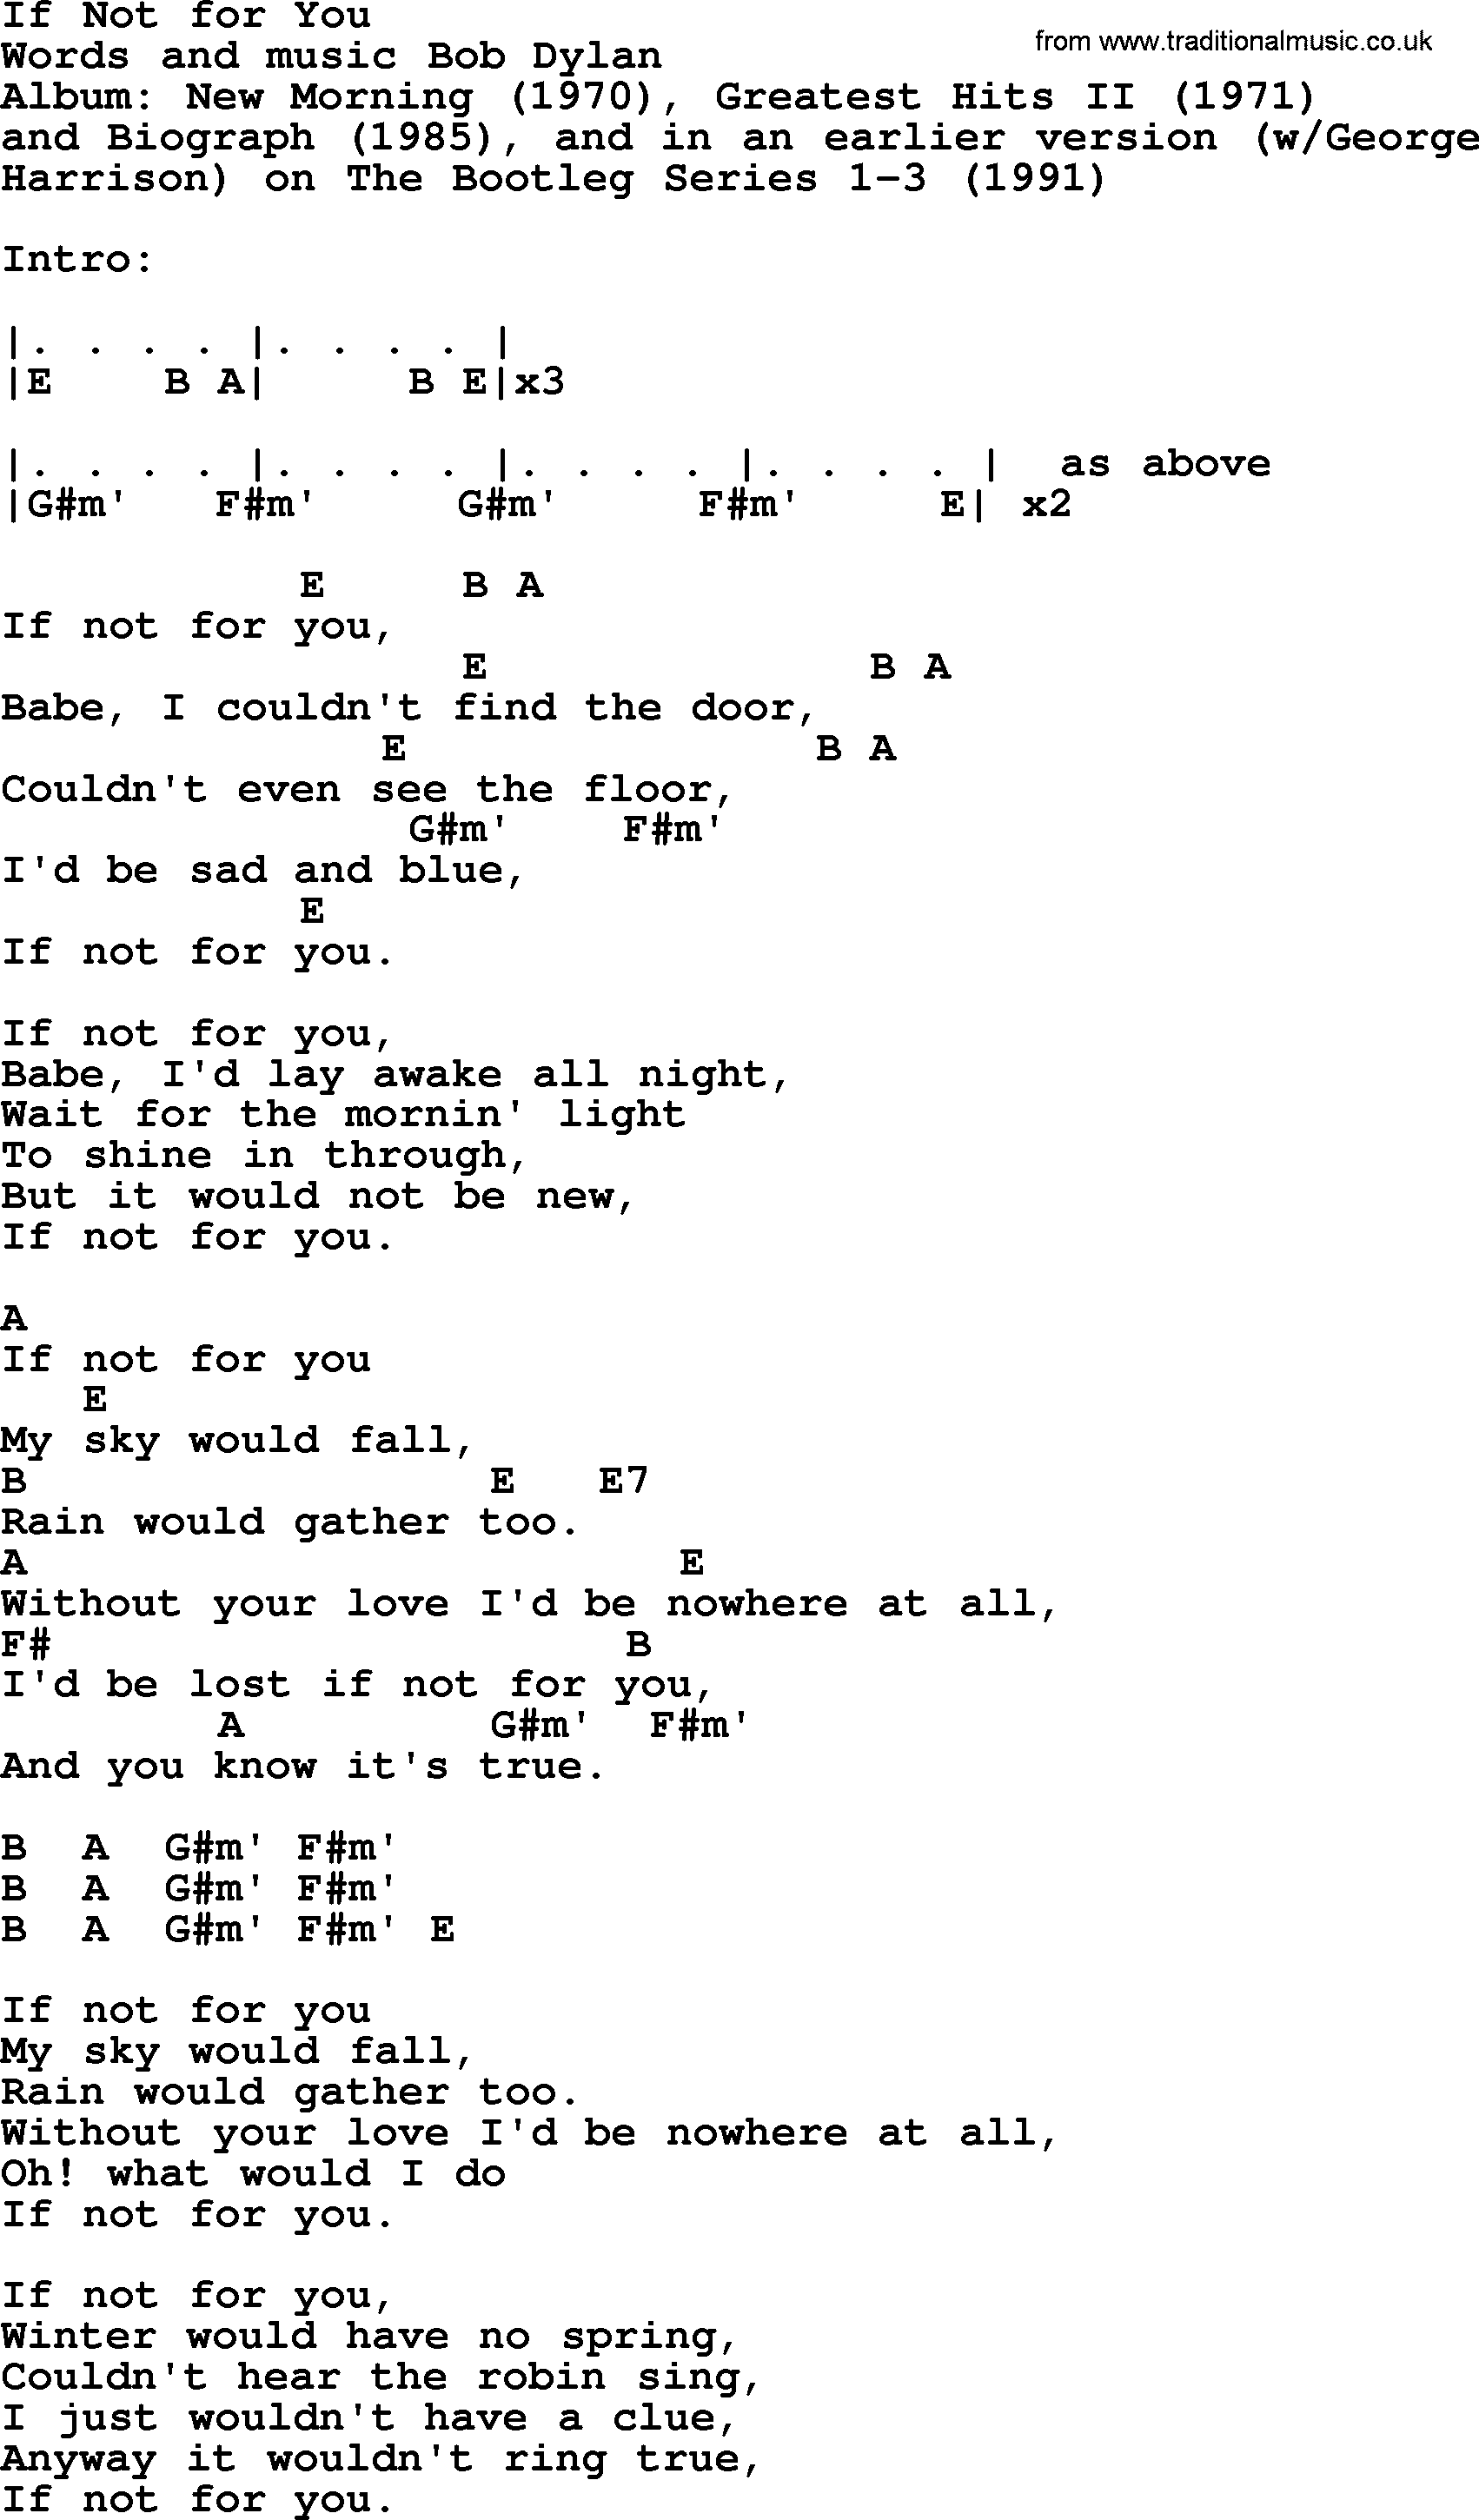 Bob dylan song if not for you lyrics and chords bob dylan song lyrics with chords if not for you hexwebz Image collections